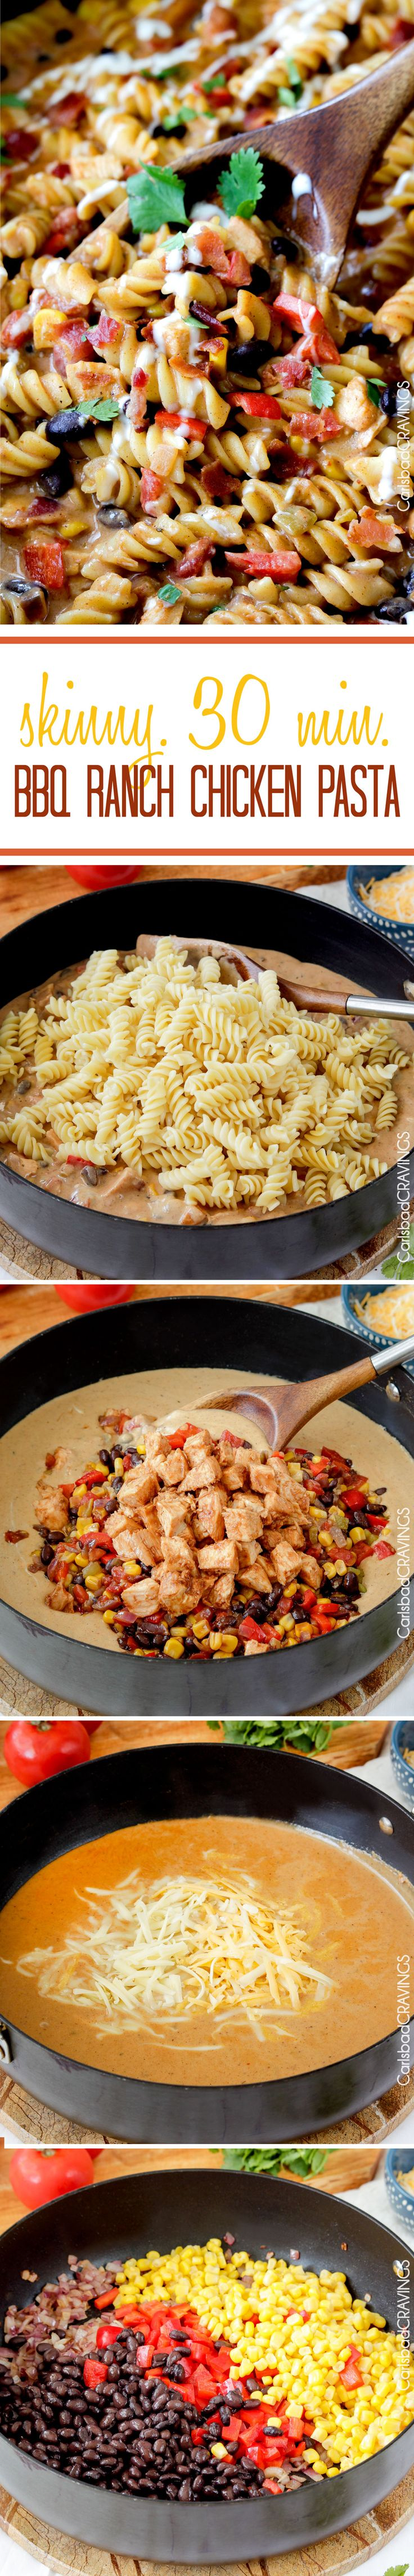 Family Favorite 30 minute Santa Fe BBQ Ranch Chicken Pasta will have your family begging for thirds with its Mexican infused SKINNY creamy ranch cheese sauce and tender oven baked chicken. I will swap pasta for gluten free pizza and exchange flour for a gf cup for cup exchange.